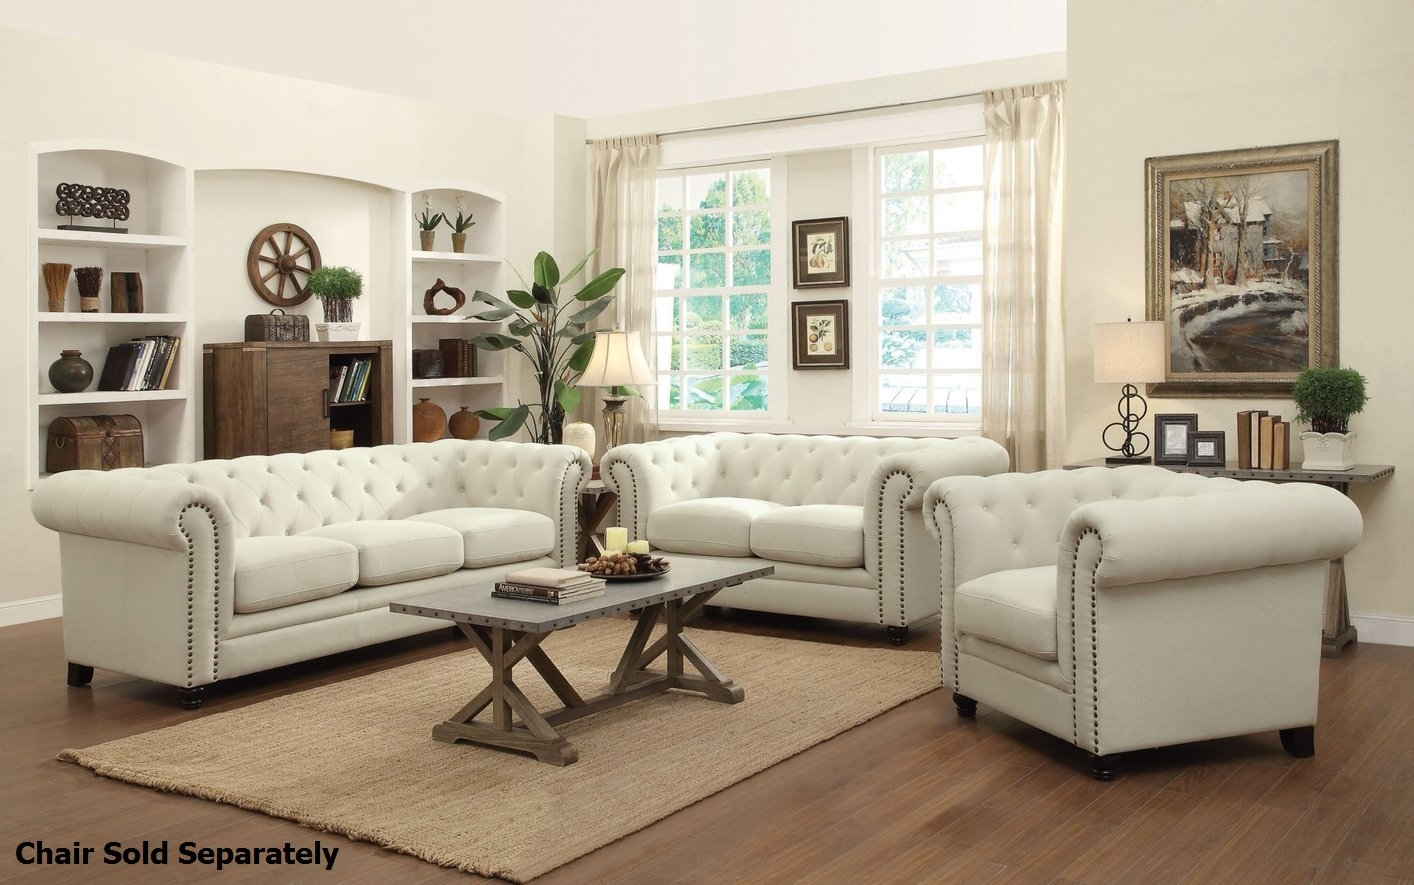 Coaster Roy 504554 504555 Beige Fabric Sofa And Loveseat Set Within Sofa Loveseat And Chairs (Image 5 of 15)